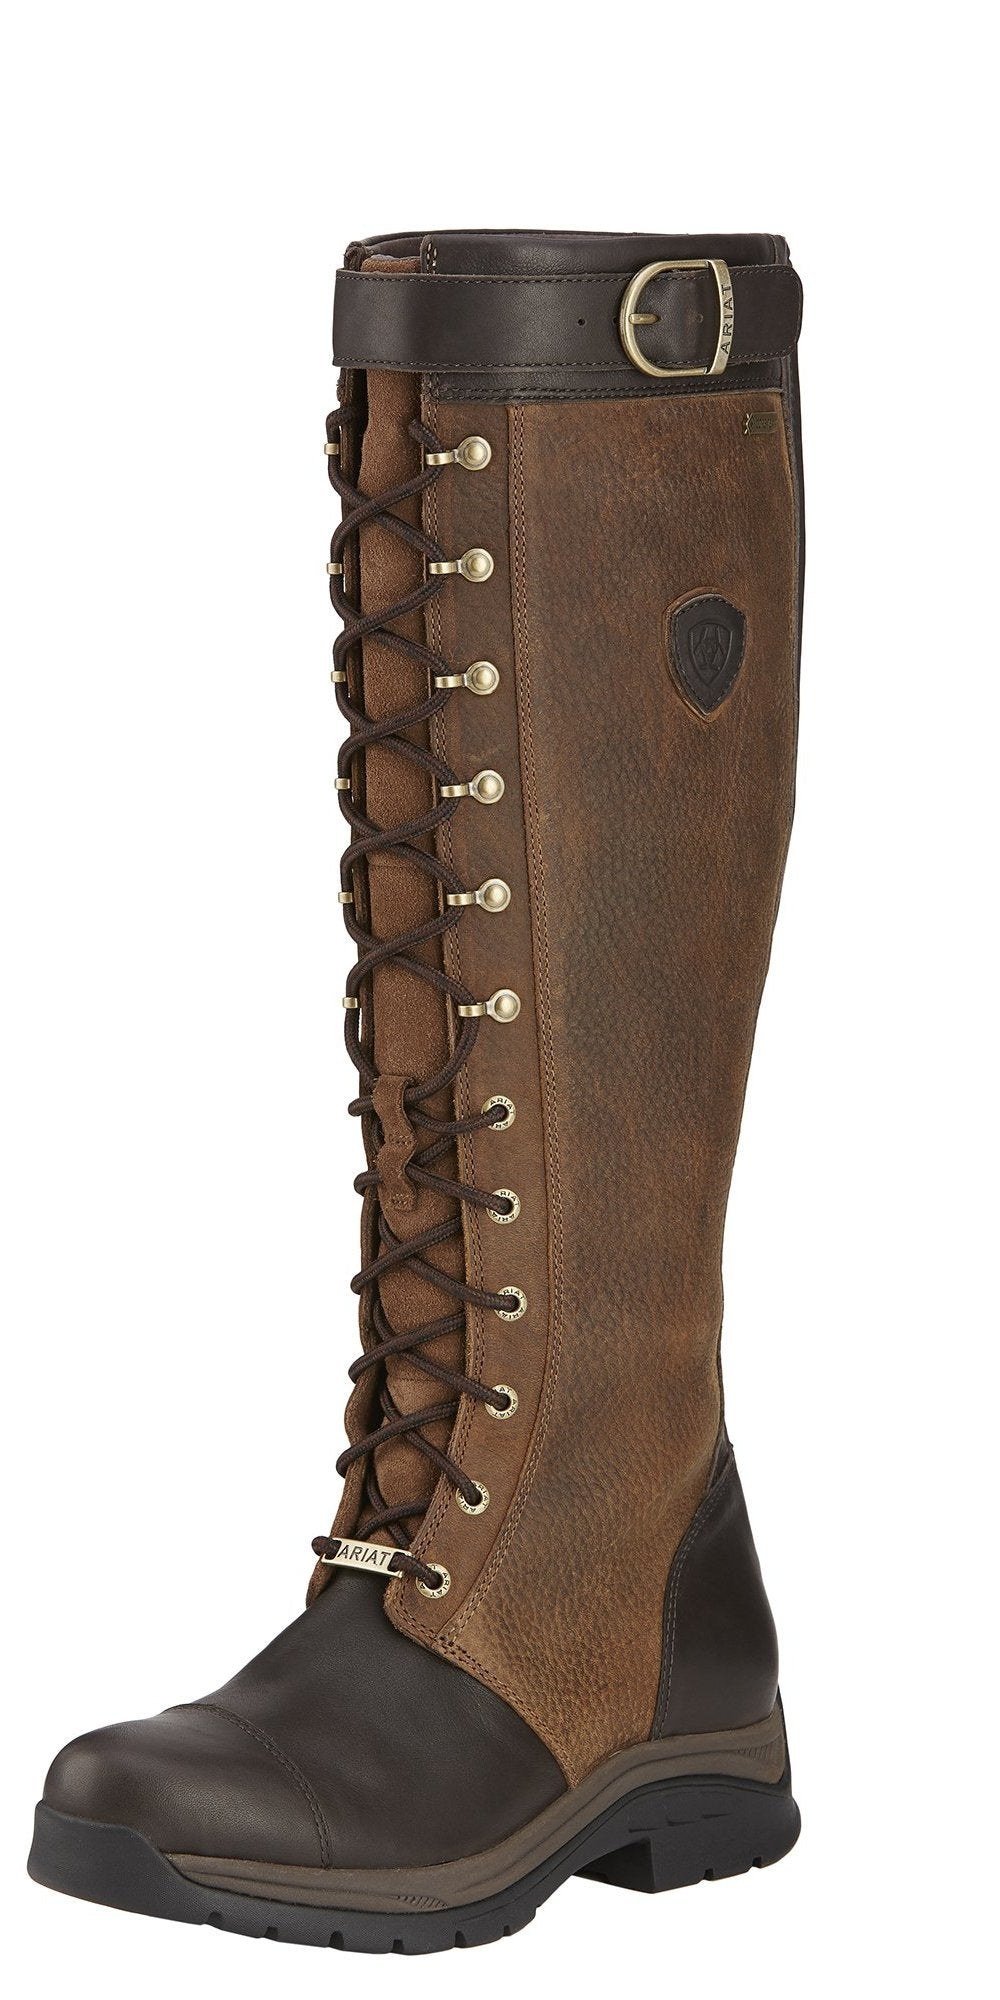 Ariat Berwick Insulated H2O